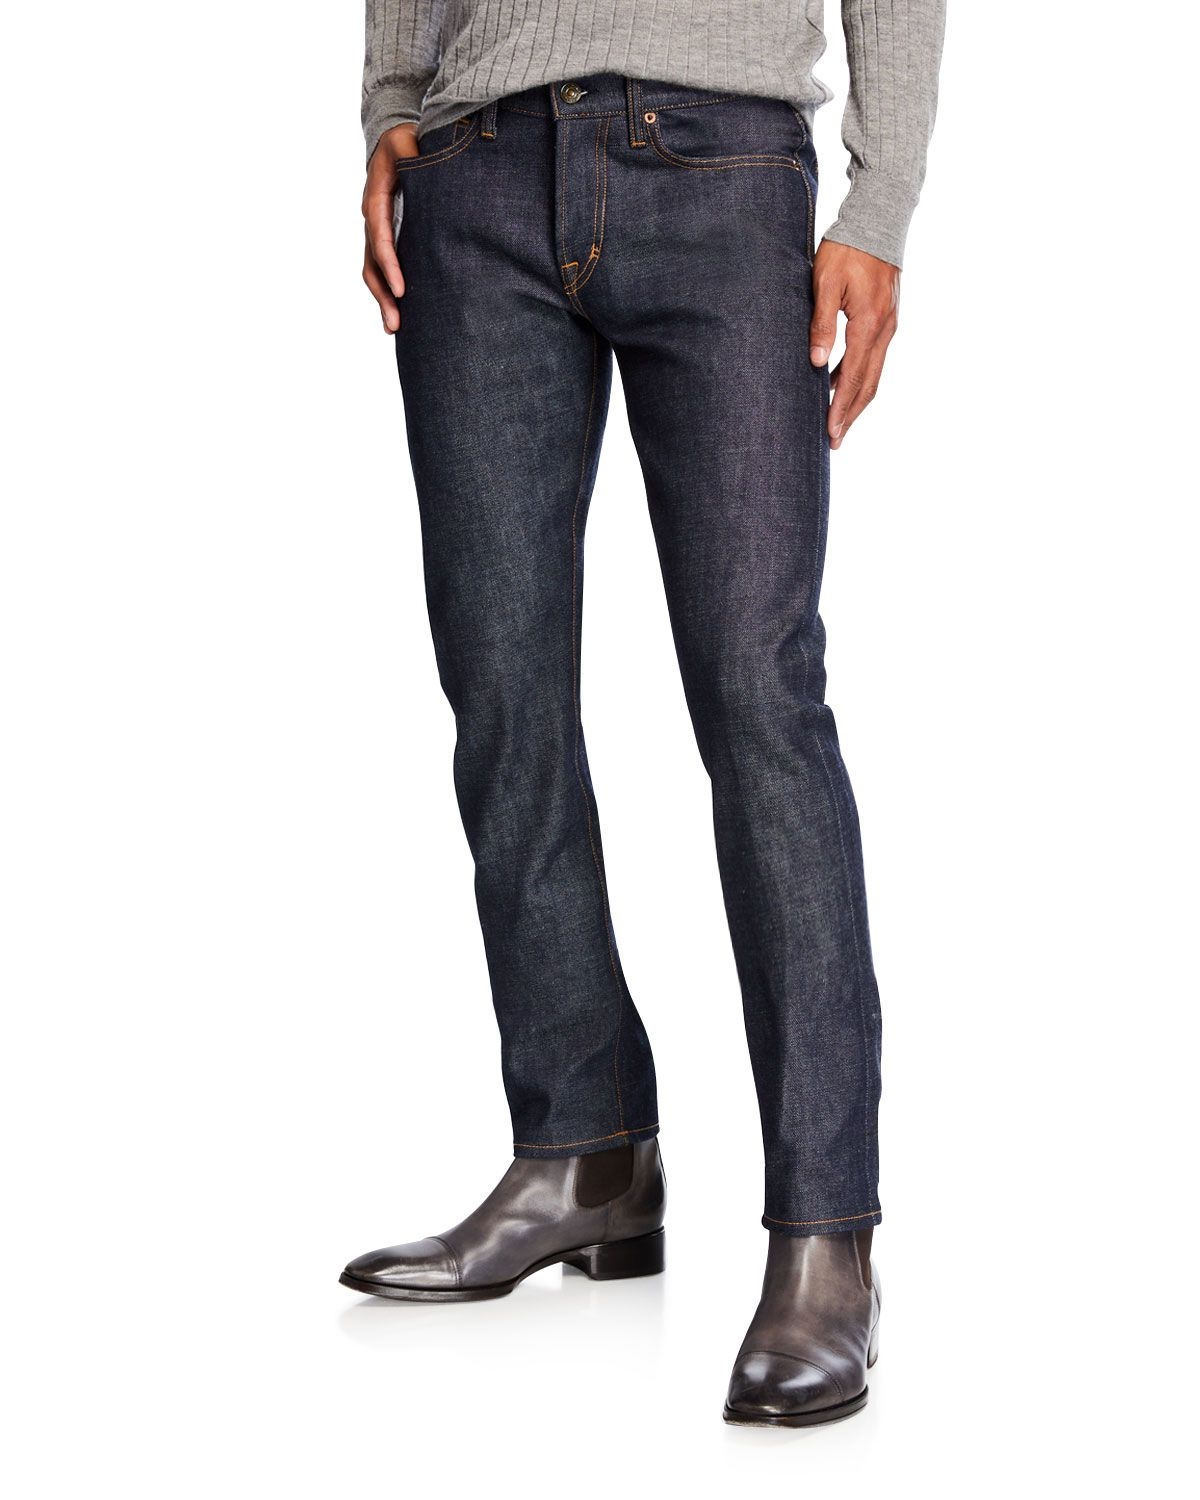 e6a29111992f17 TOM FORD MEN'S SLIM-FIT BUTTON-FLY JEANS. #tomford #cloth   men ...